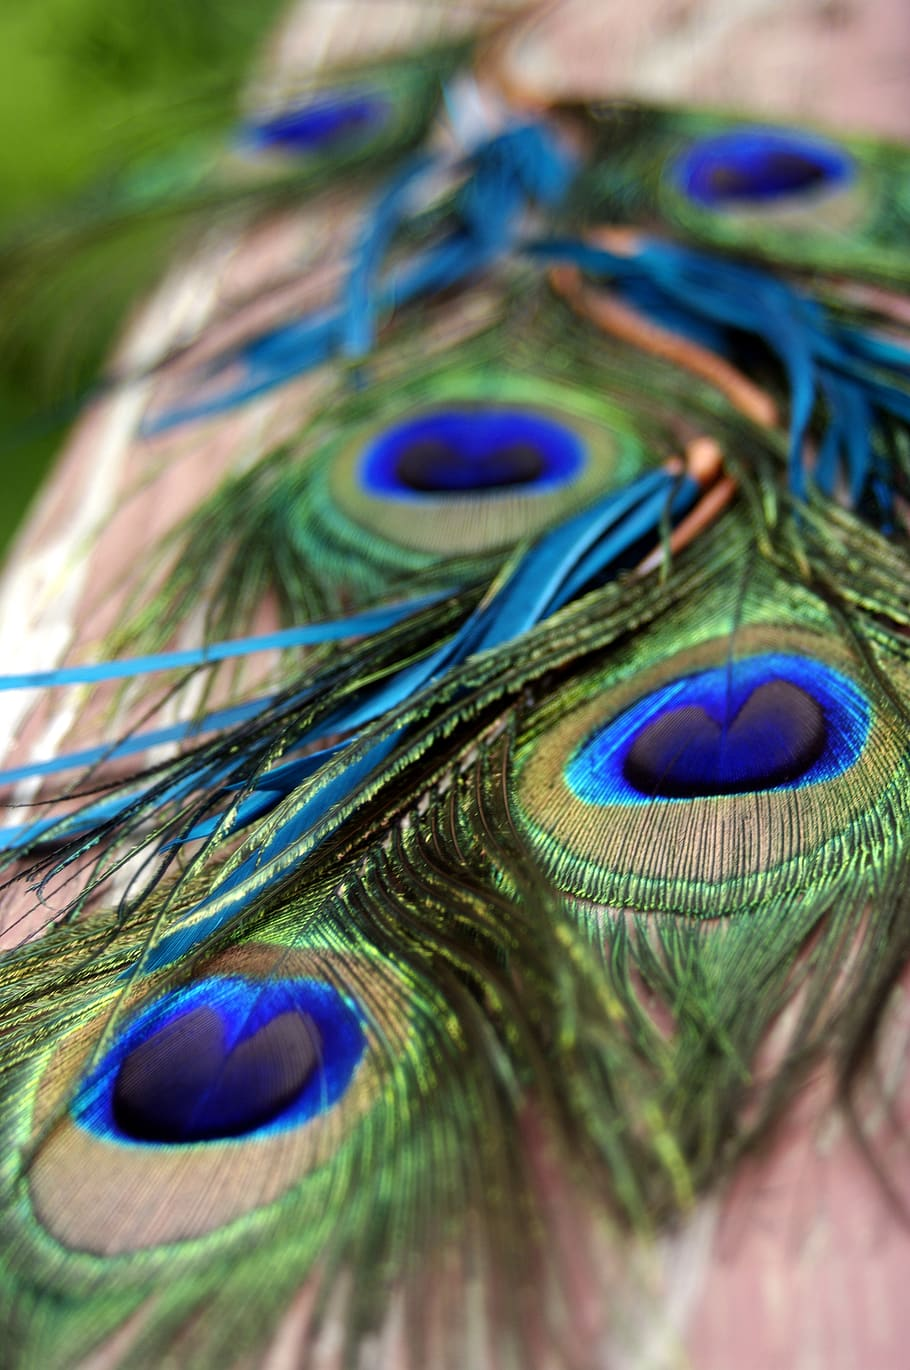 Hd Wallpaper Peacock Peacock Feather Peacock Feathers Green Blue Teal Wallpaper Flare